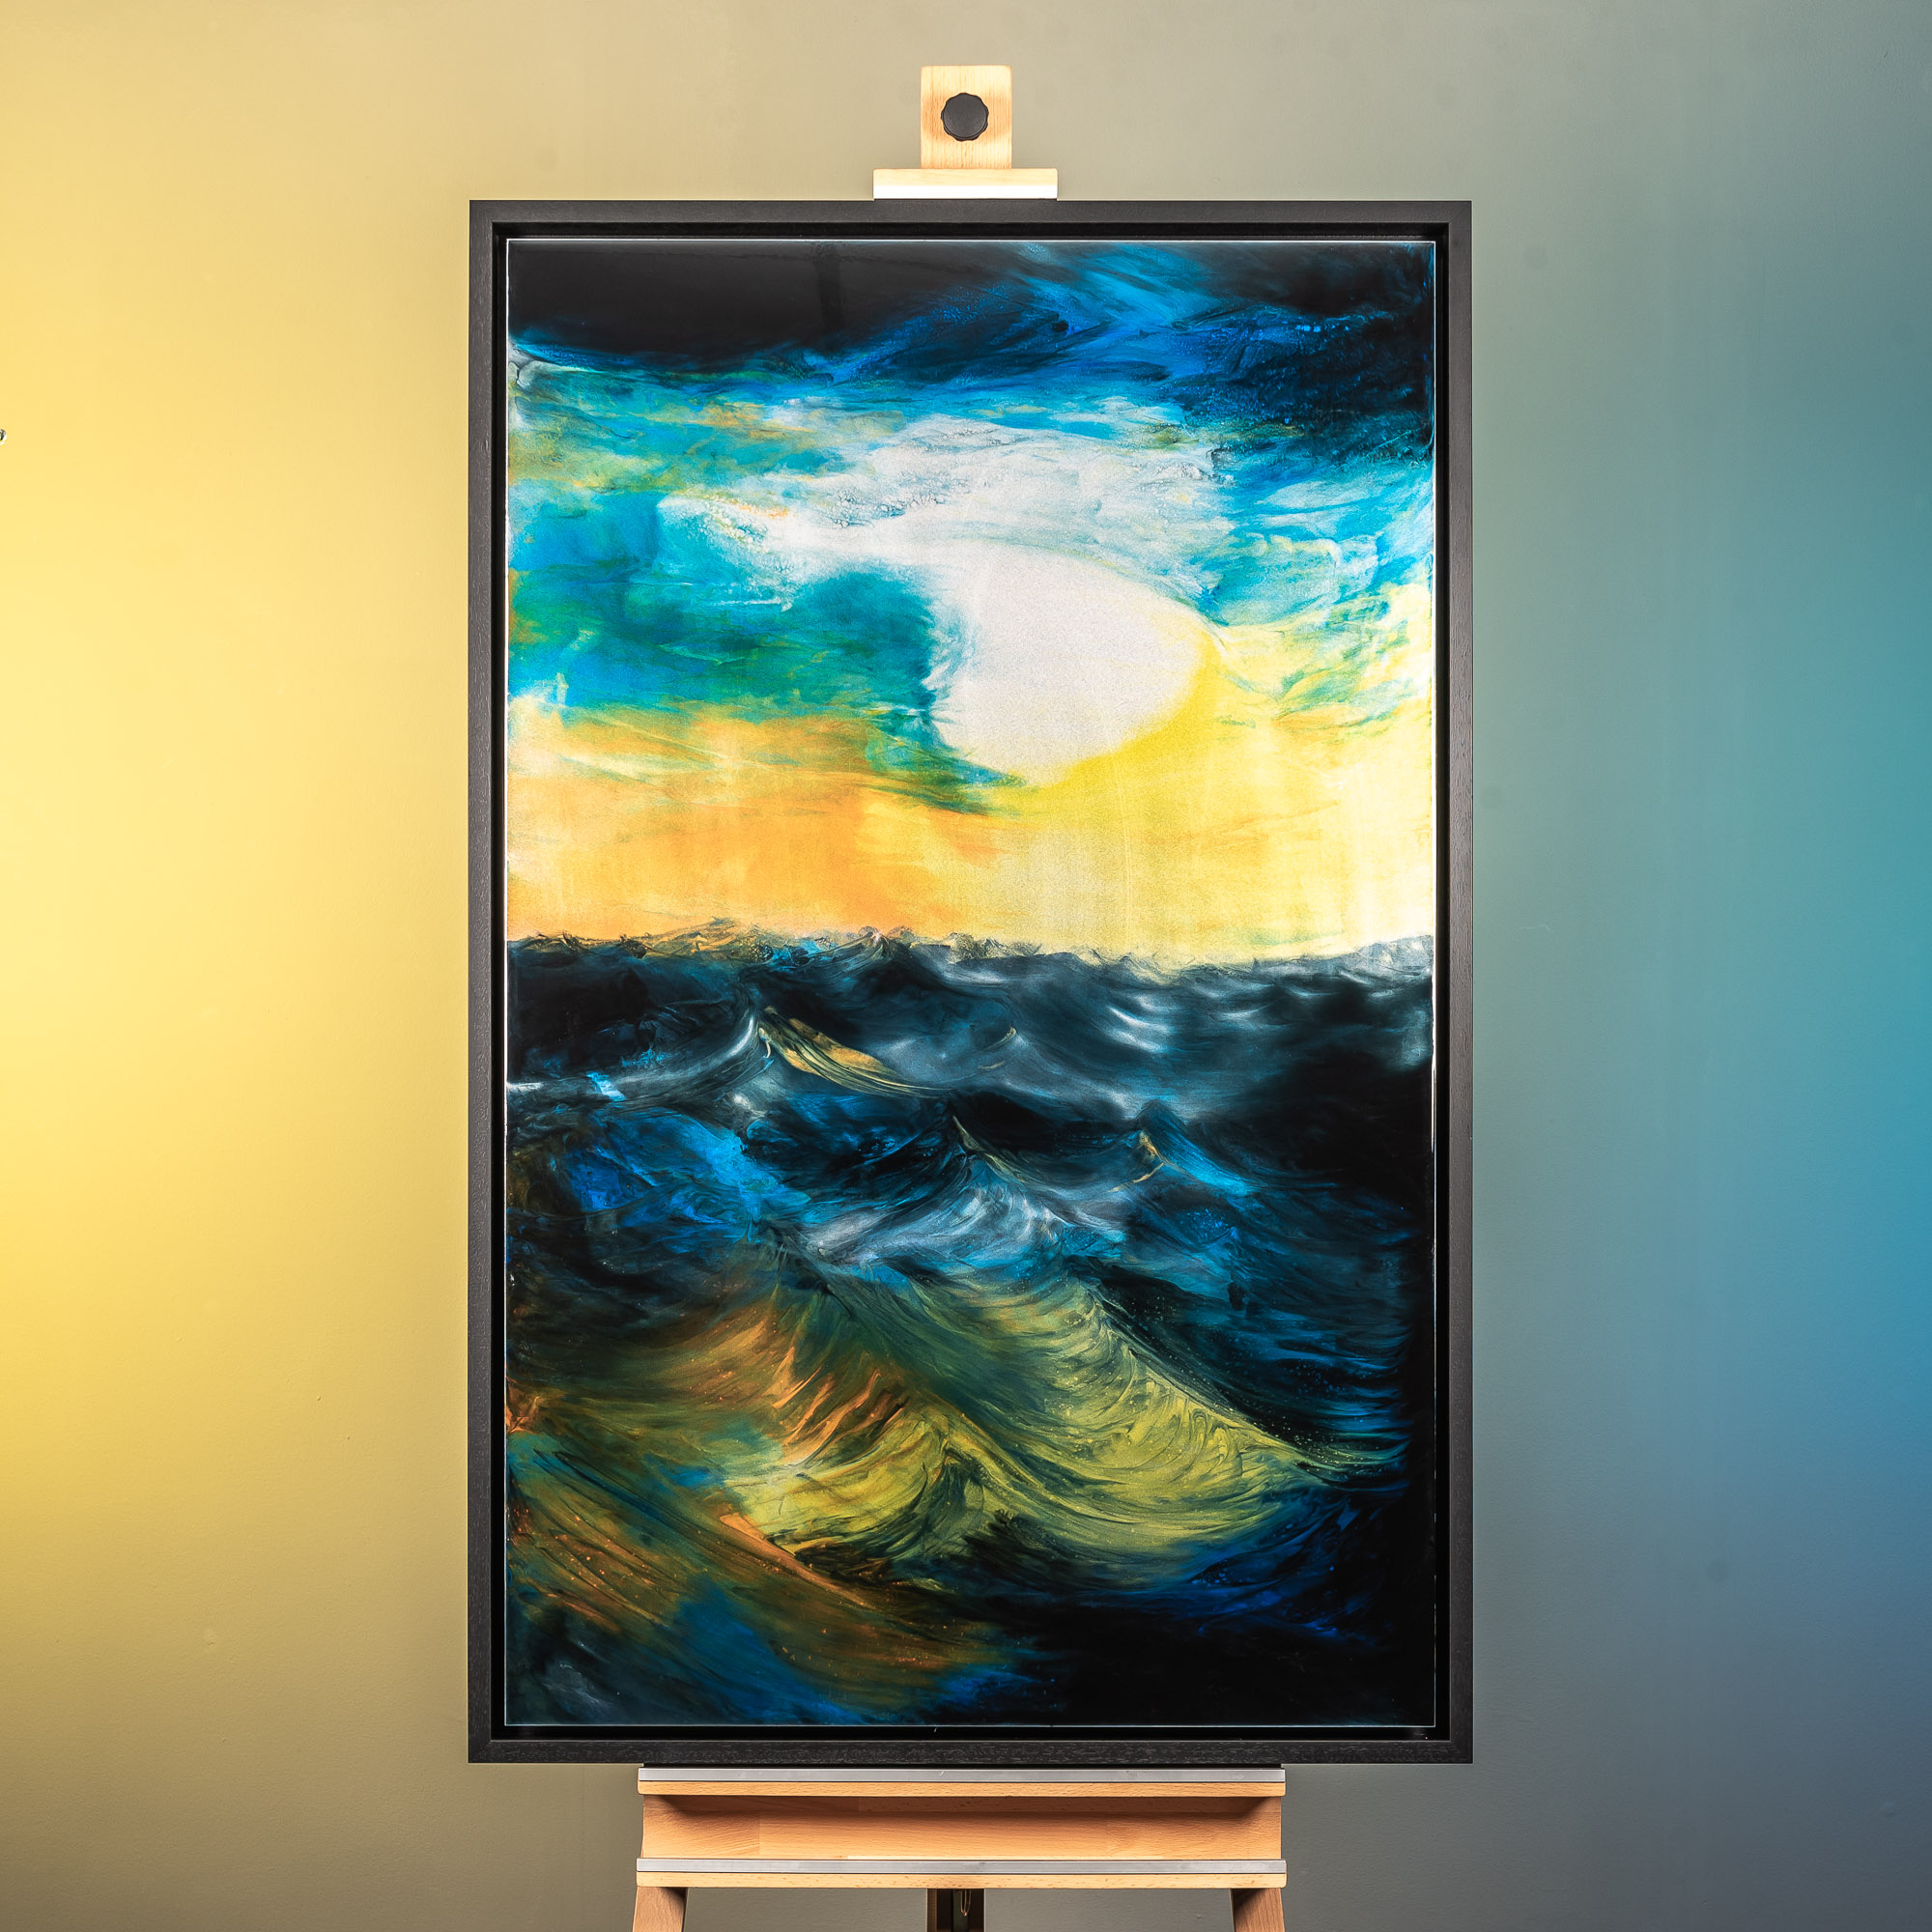 Twilight On The Ocean by Paul Kenton, UK Contemporary artist, a Original Ocean painting from his Oceans and Mountainscapes art collection